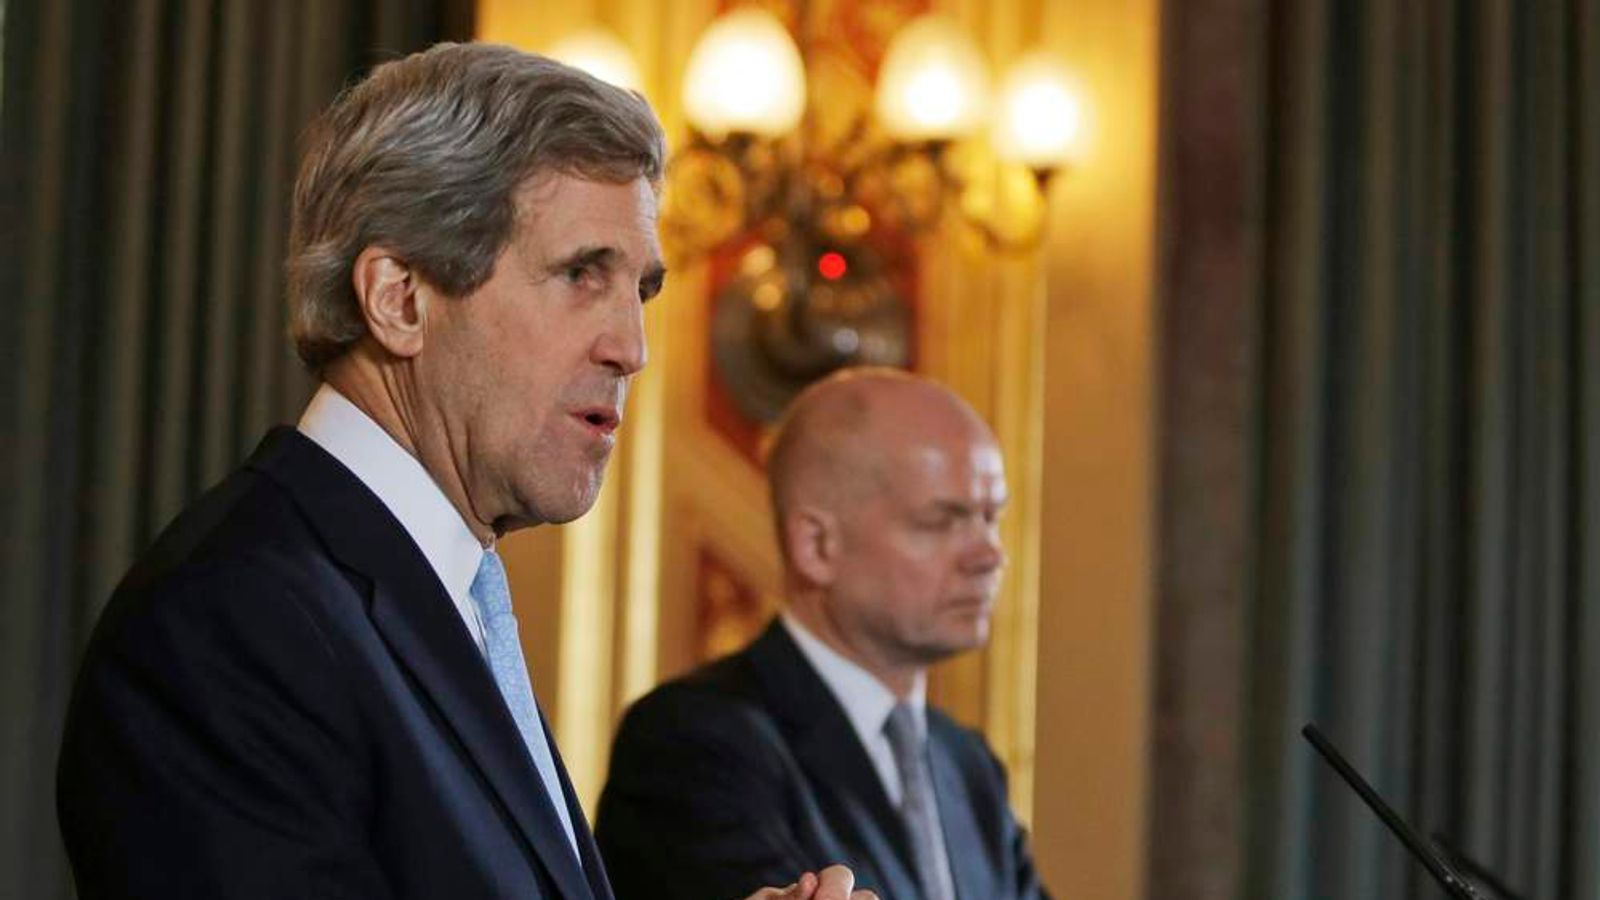 U.S. Secretary of State John Kerry and Britain's Foreign Secretary William Hague hold a joint news conference at the Foreign and Commonwealth Office in central London